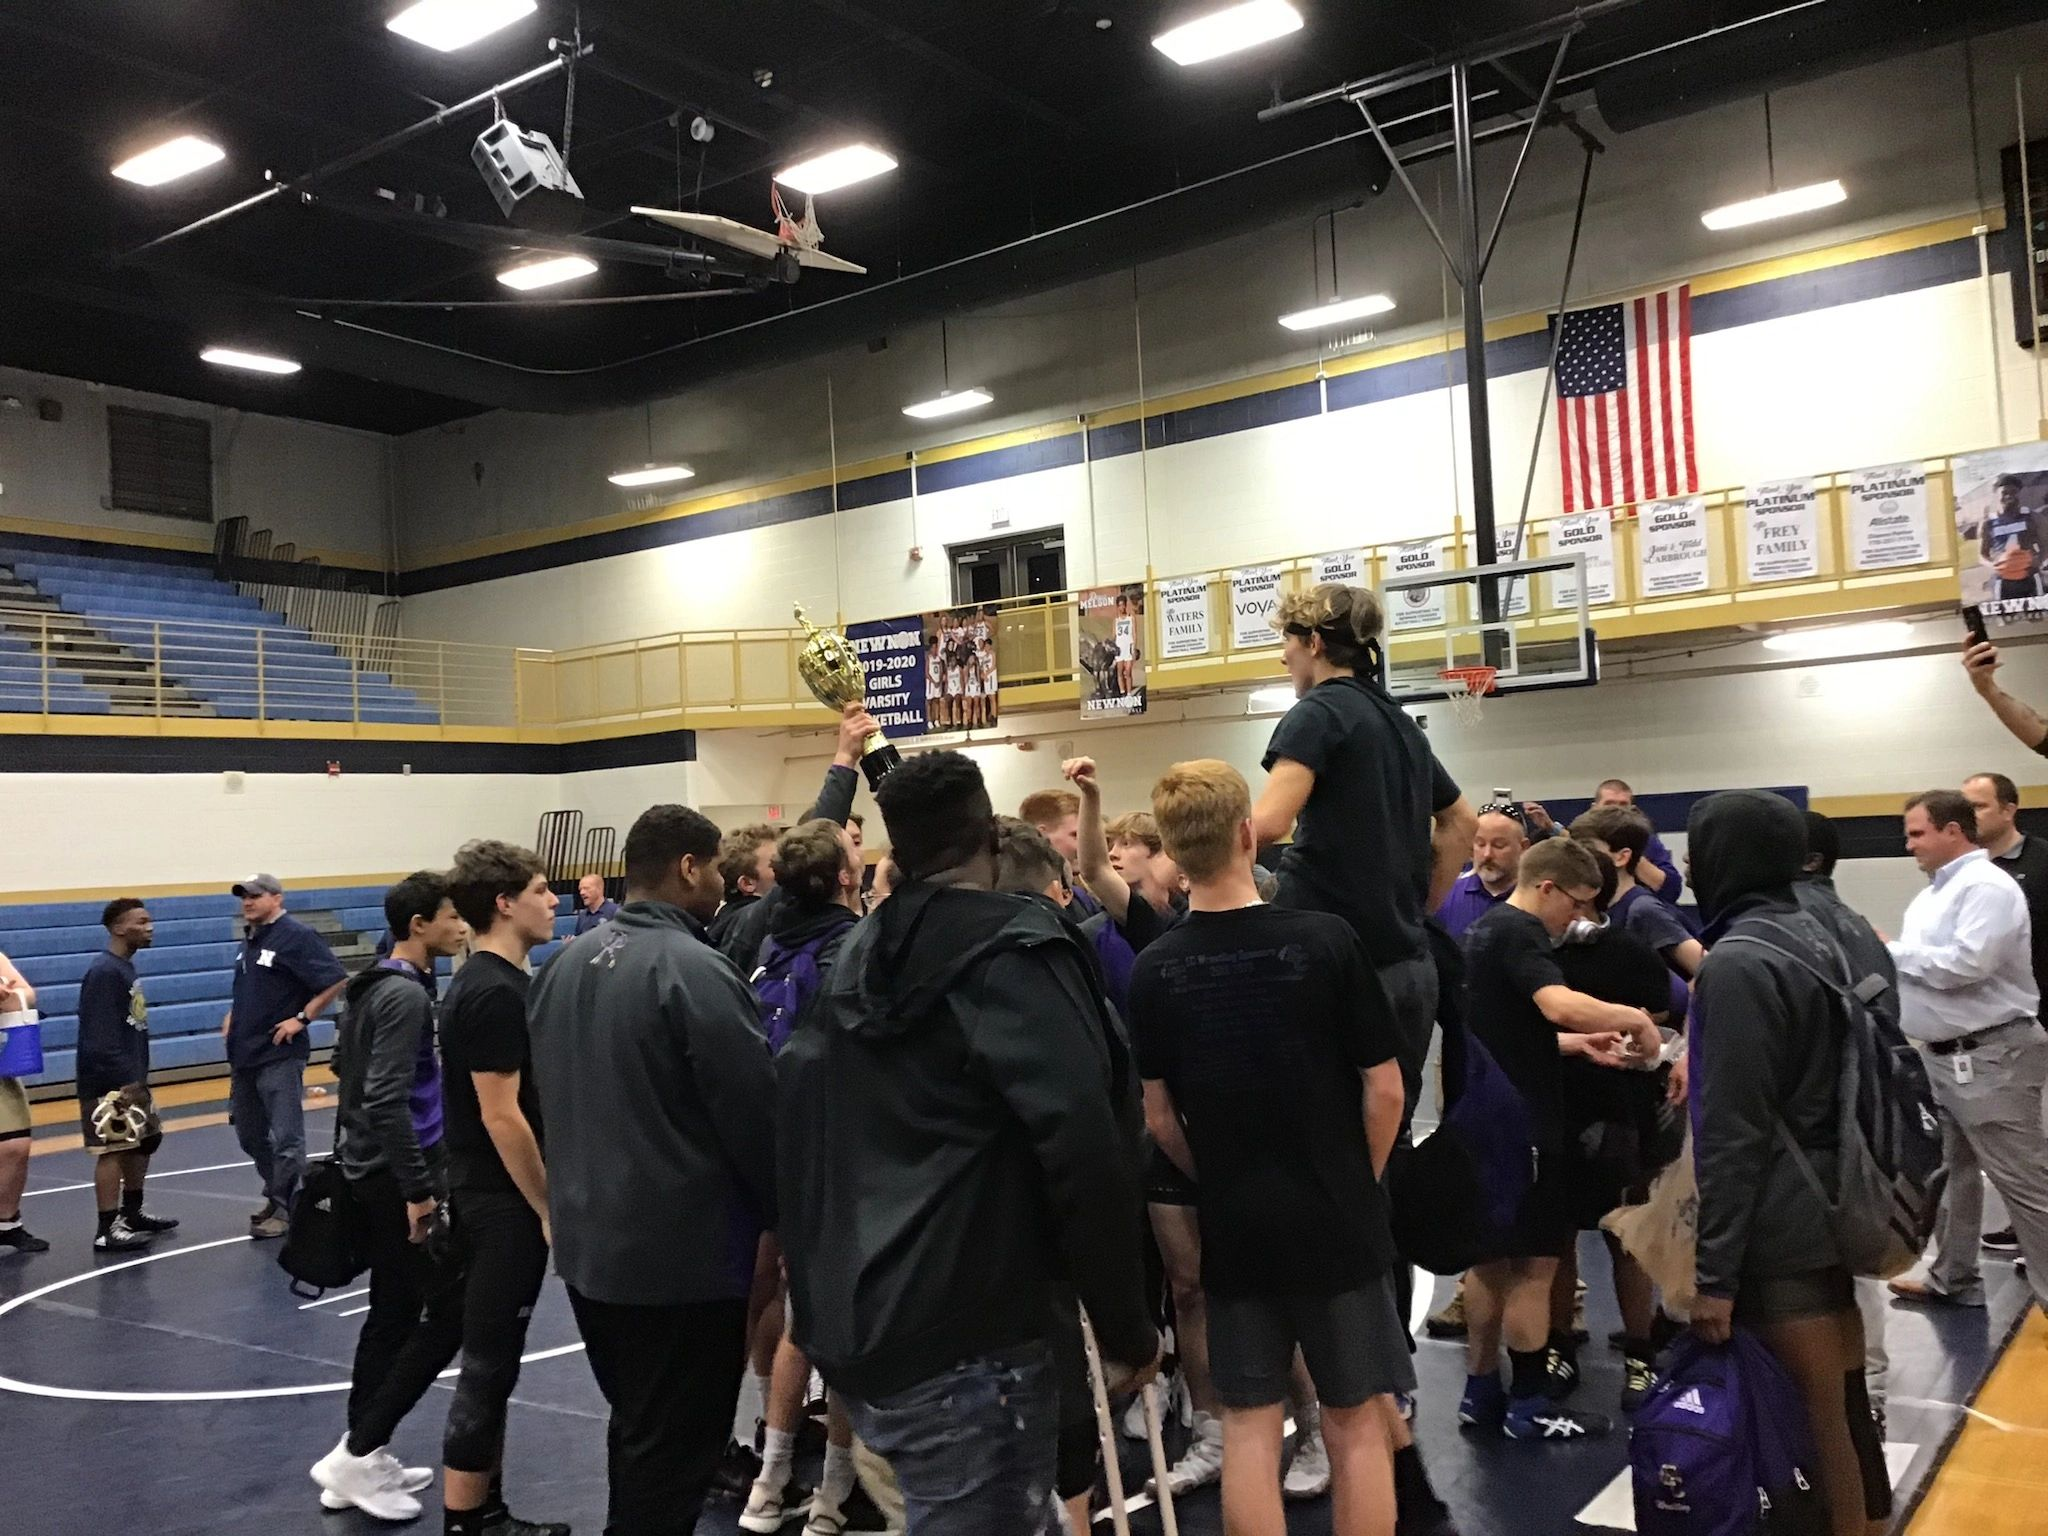 East Coweta wins the REGION DUALS TITLE!!